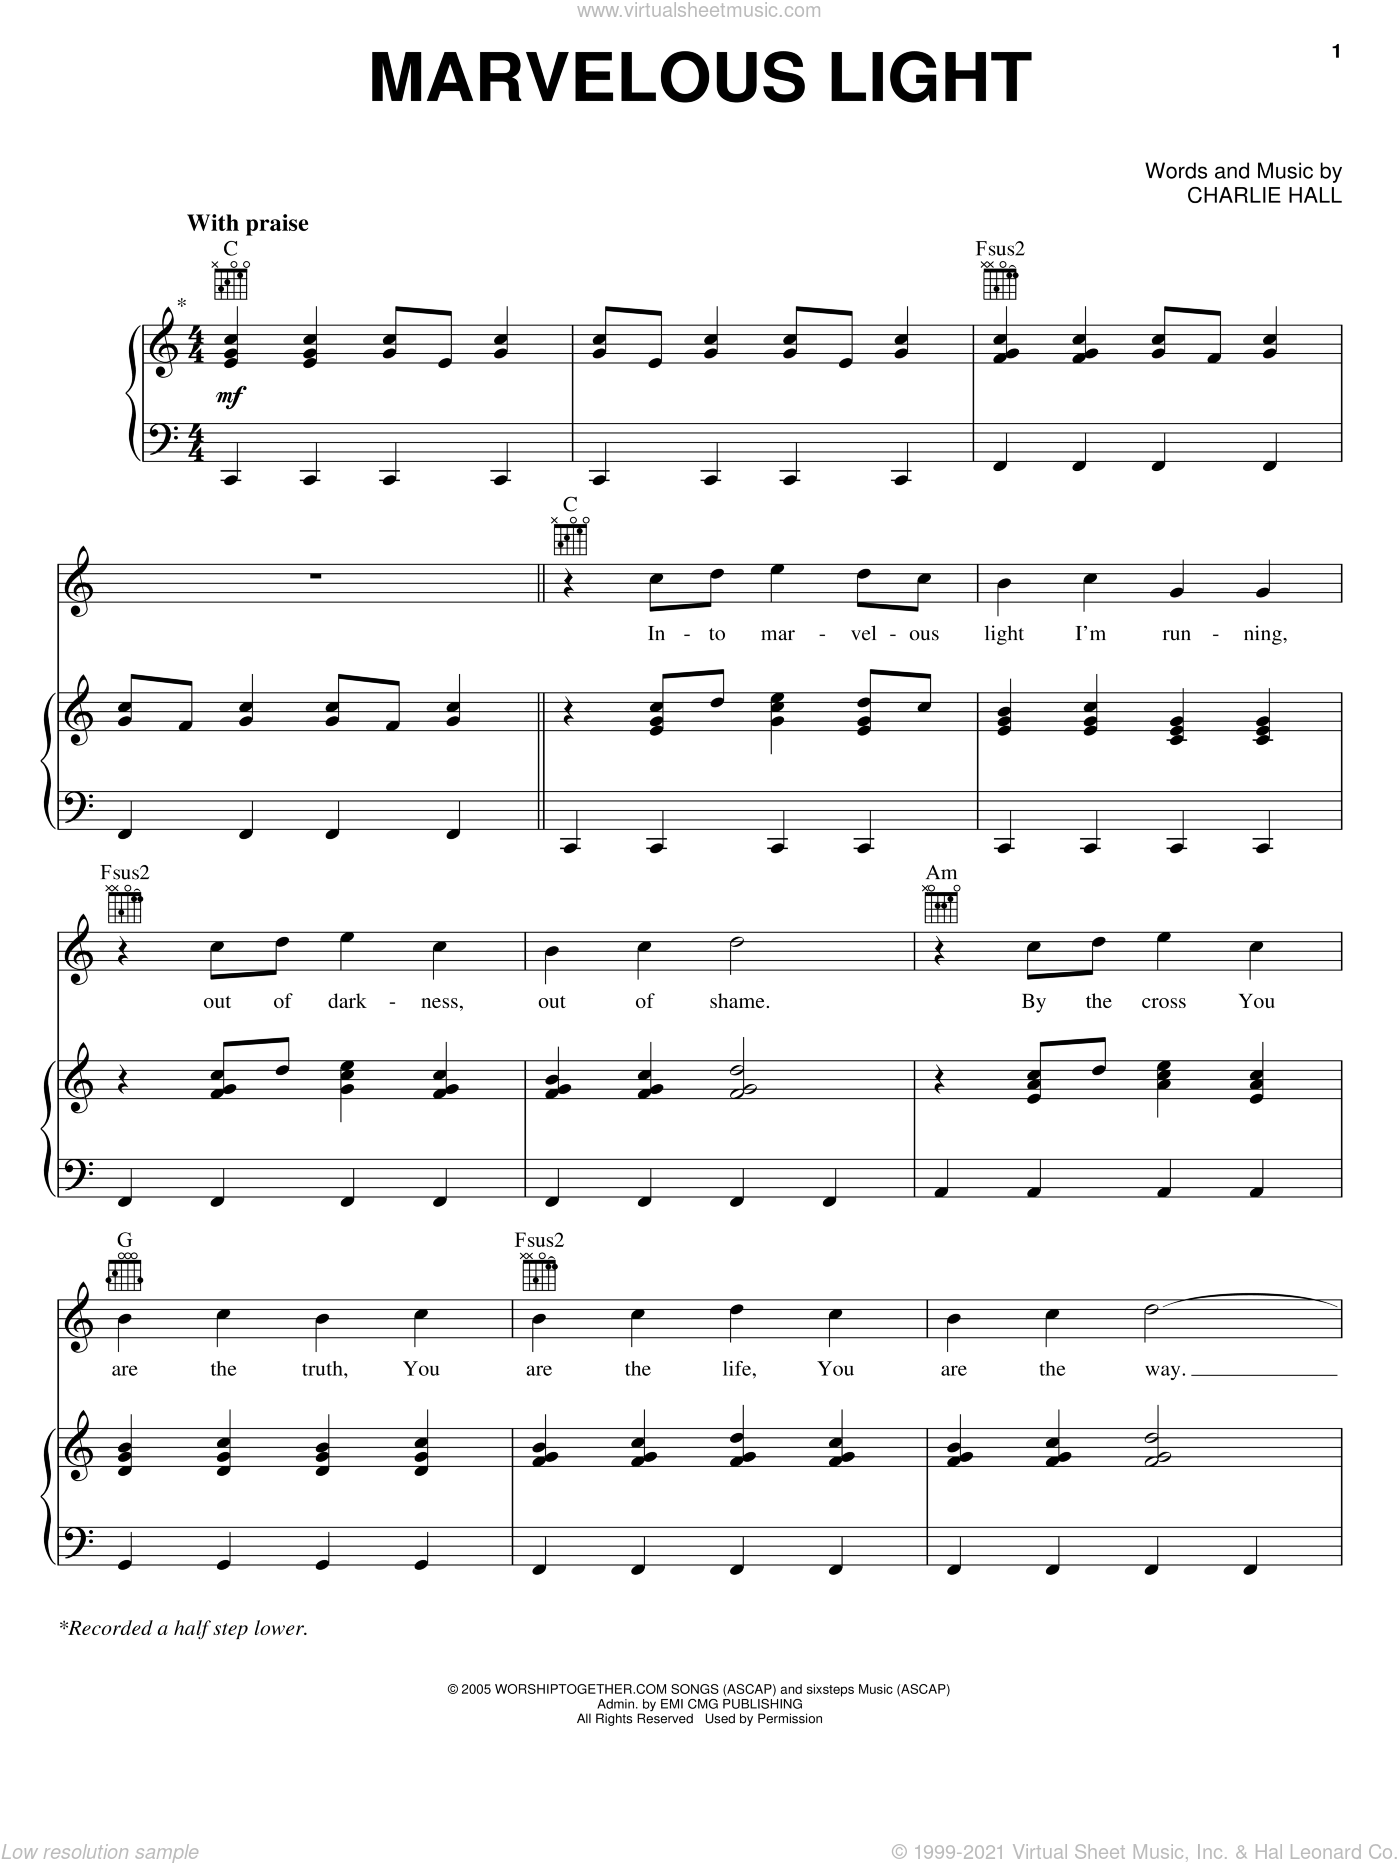 Marvelous Light sheet music for voice, piano or guitar by Charlie Hall, intermediate skill level